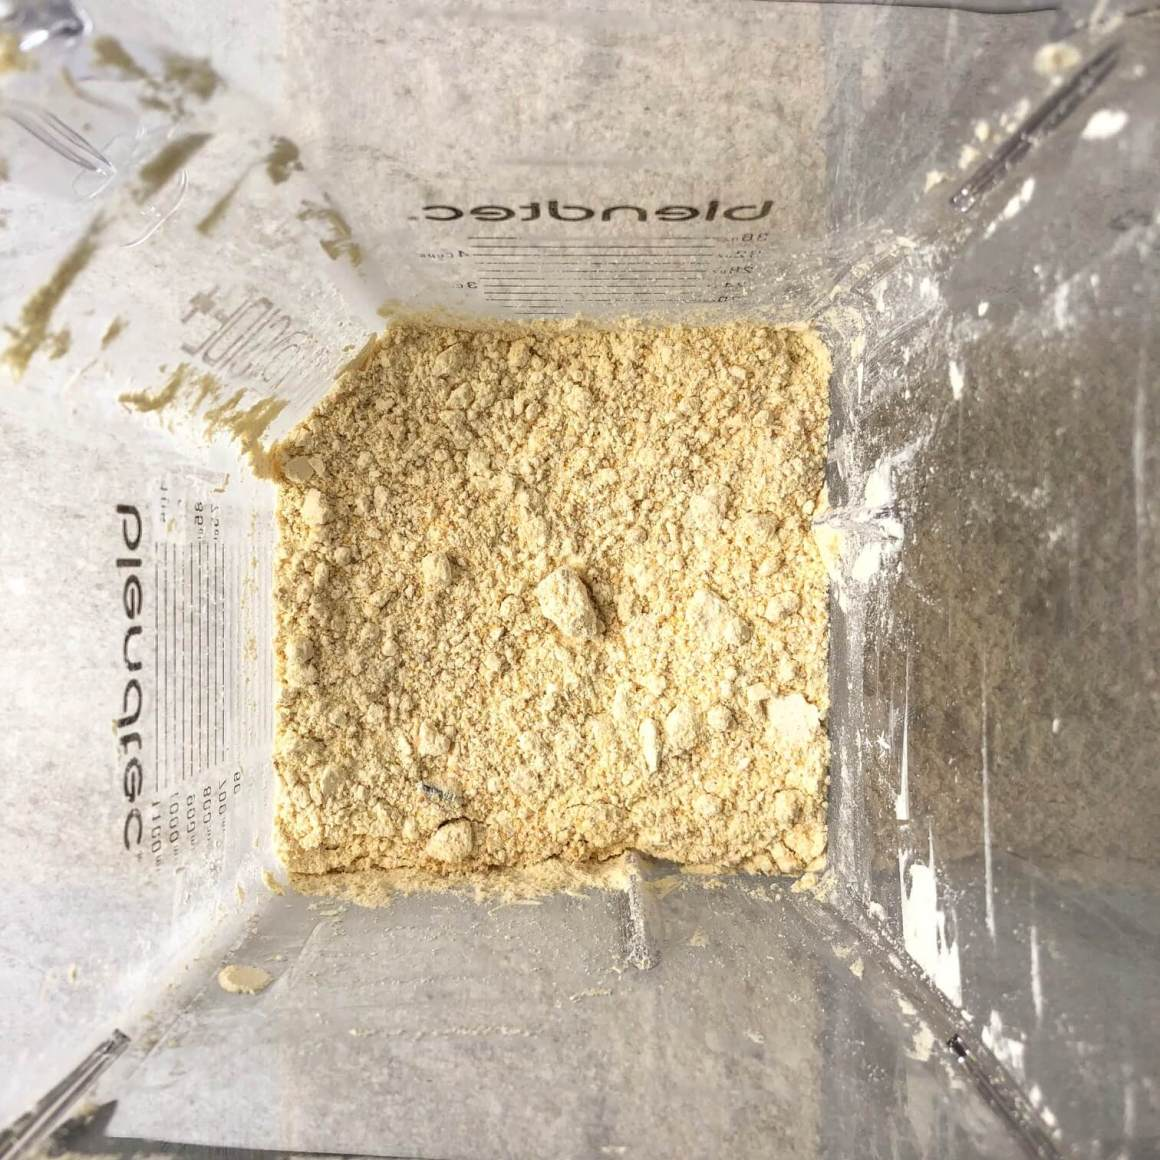 Chickpea flour in blender